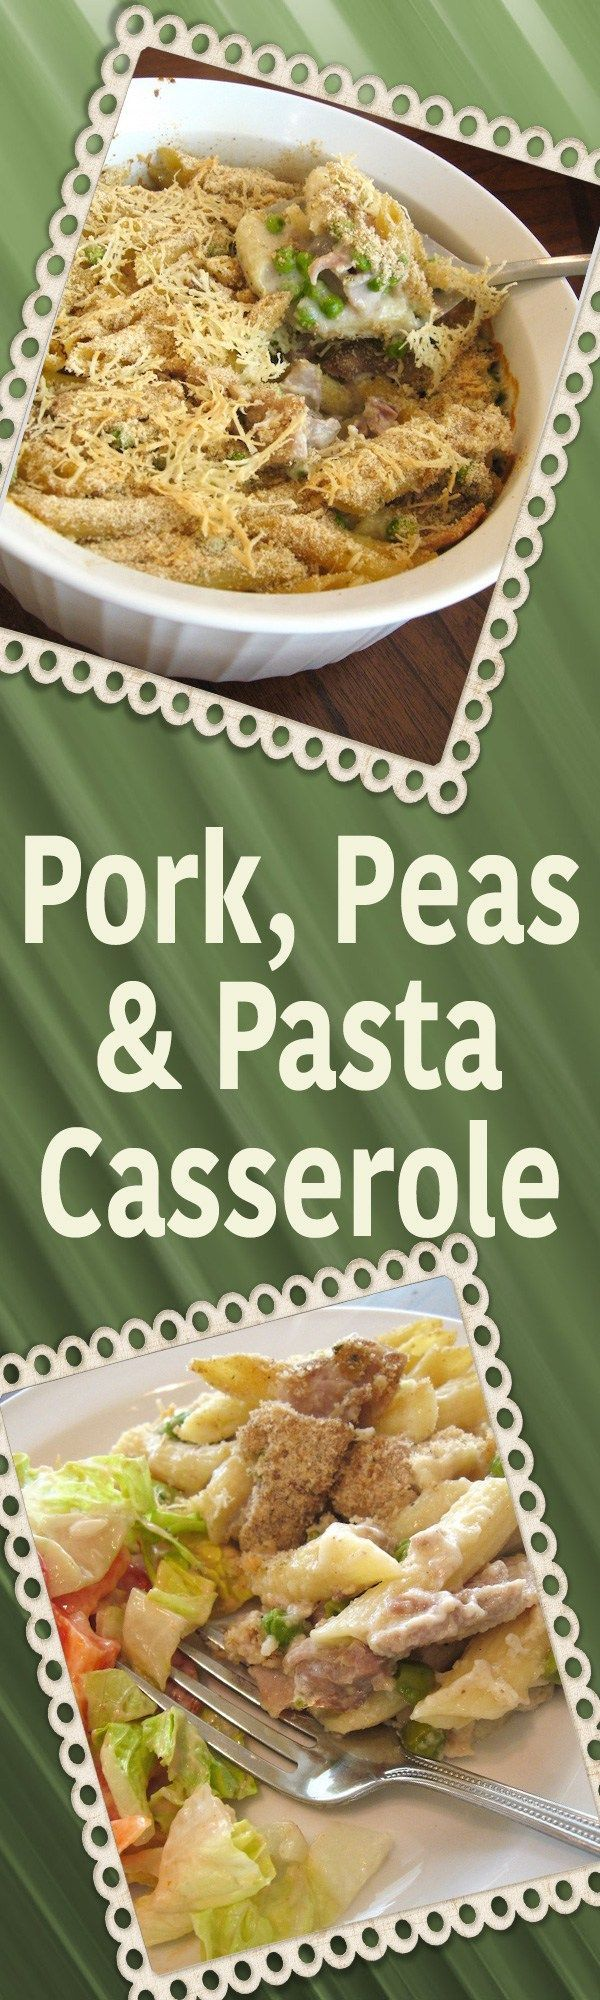 Pork Peas & Pasta Casserole recipe = easy comfort food! Leftover pork, peas pasta, and a white sauce, topped with bread crumbs & Parmesan - YUM! | delishable.net